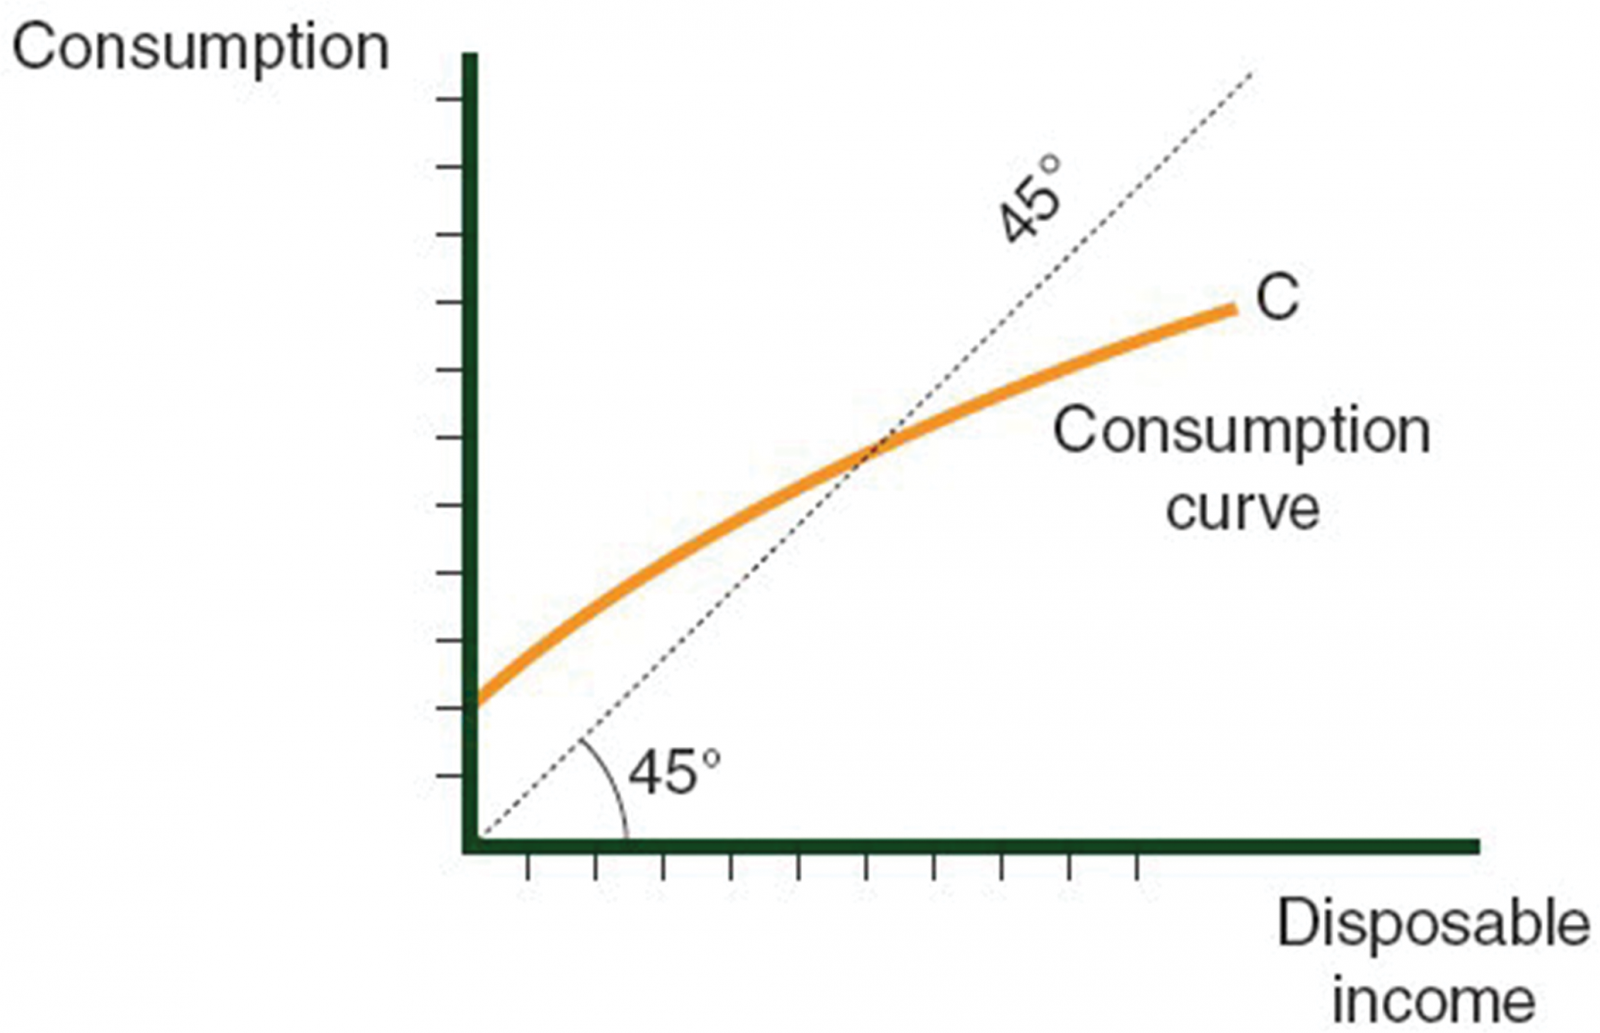 The Consumption Curve